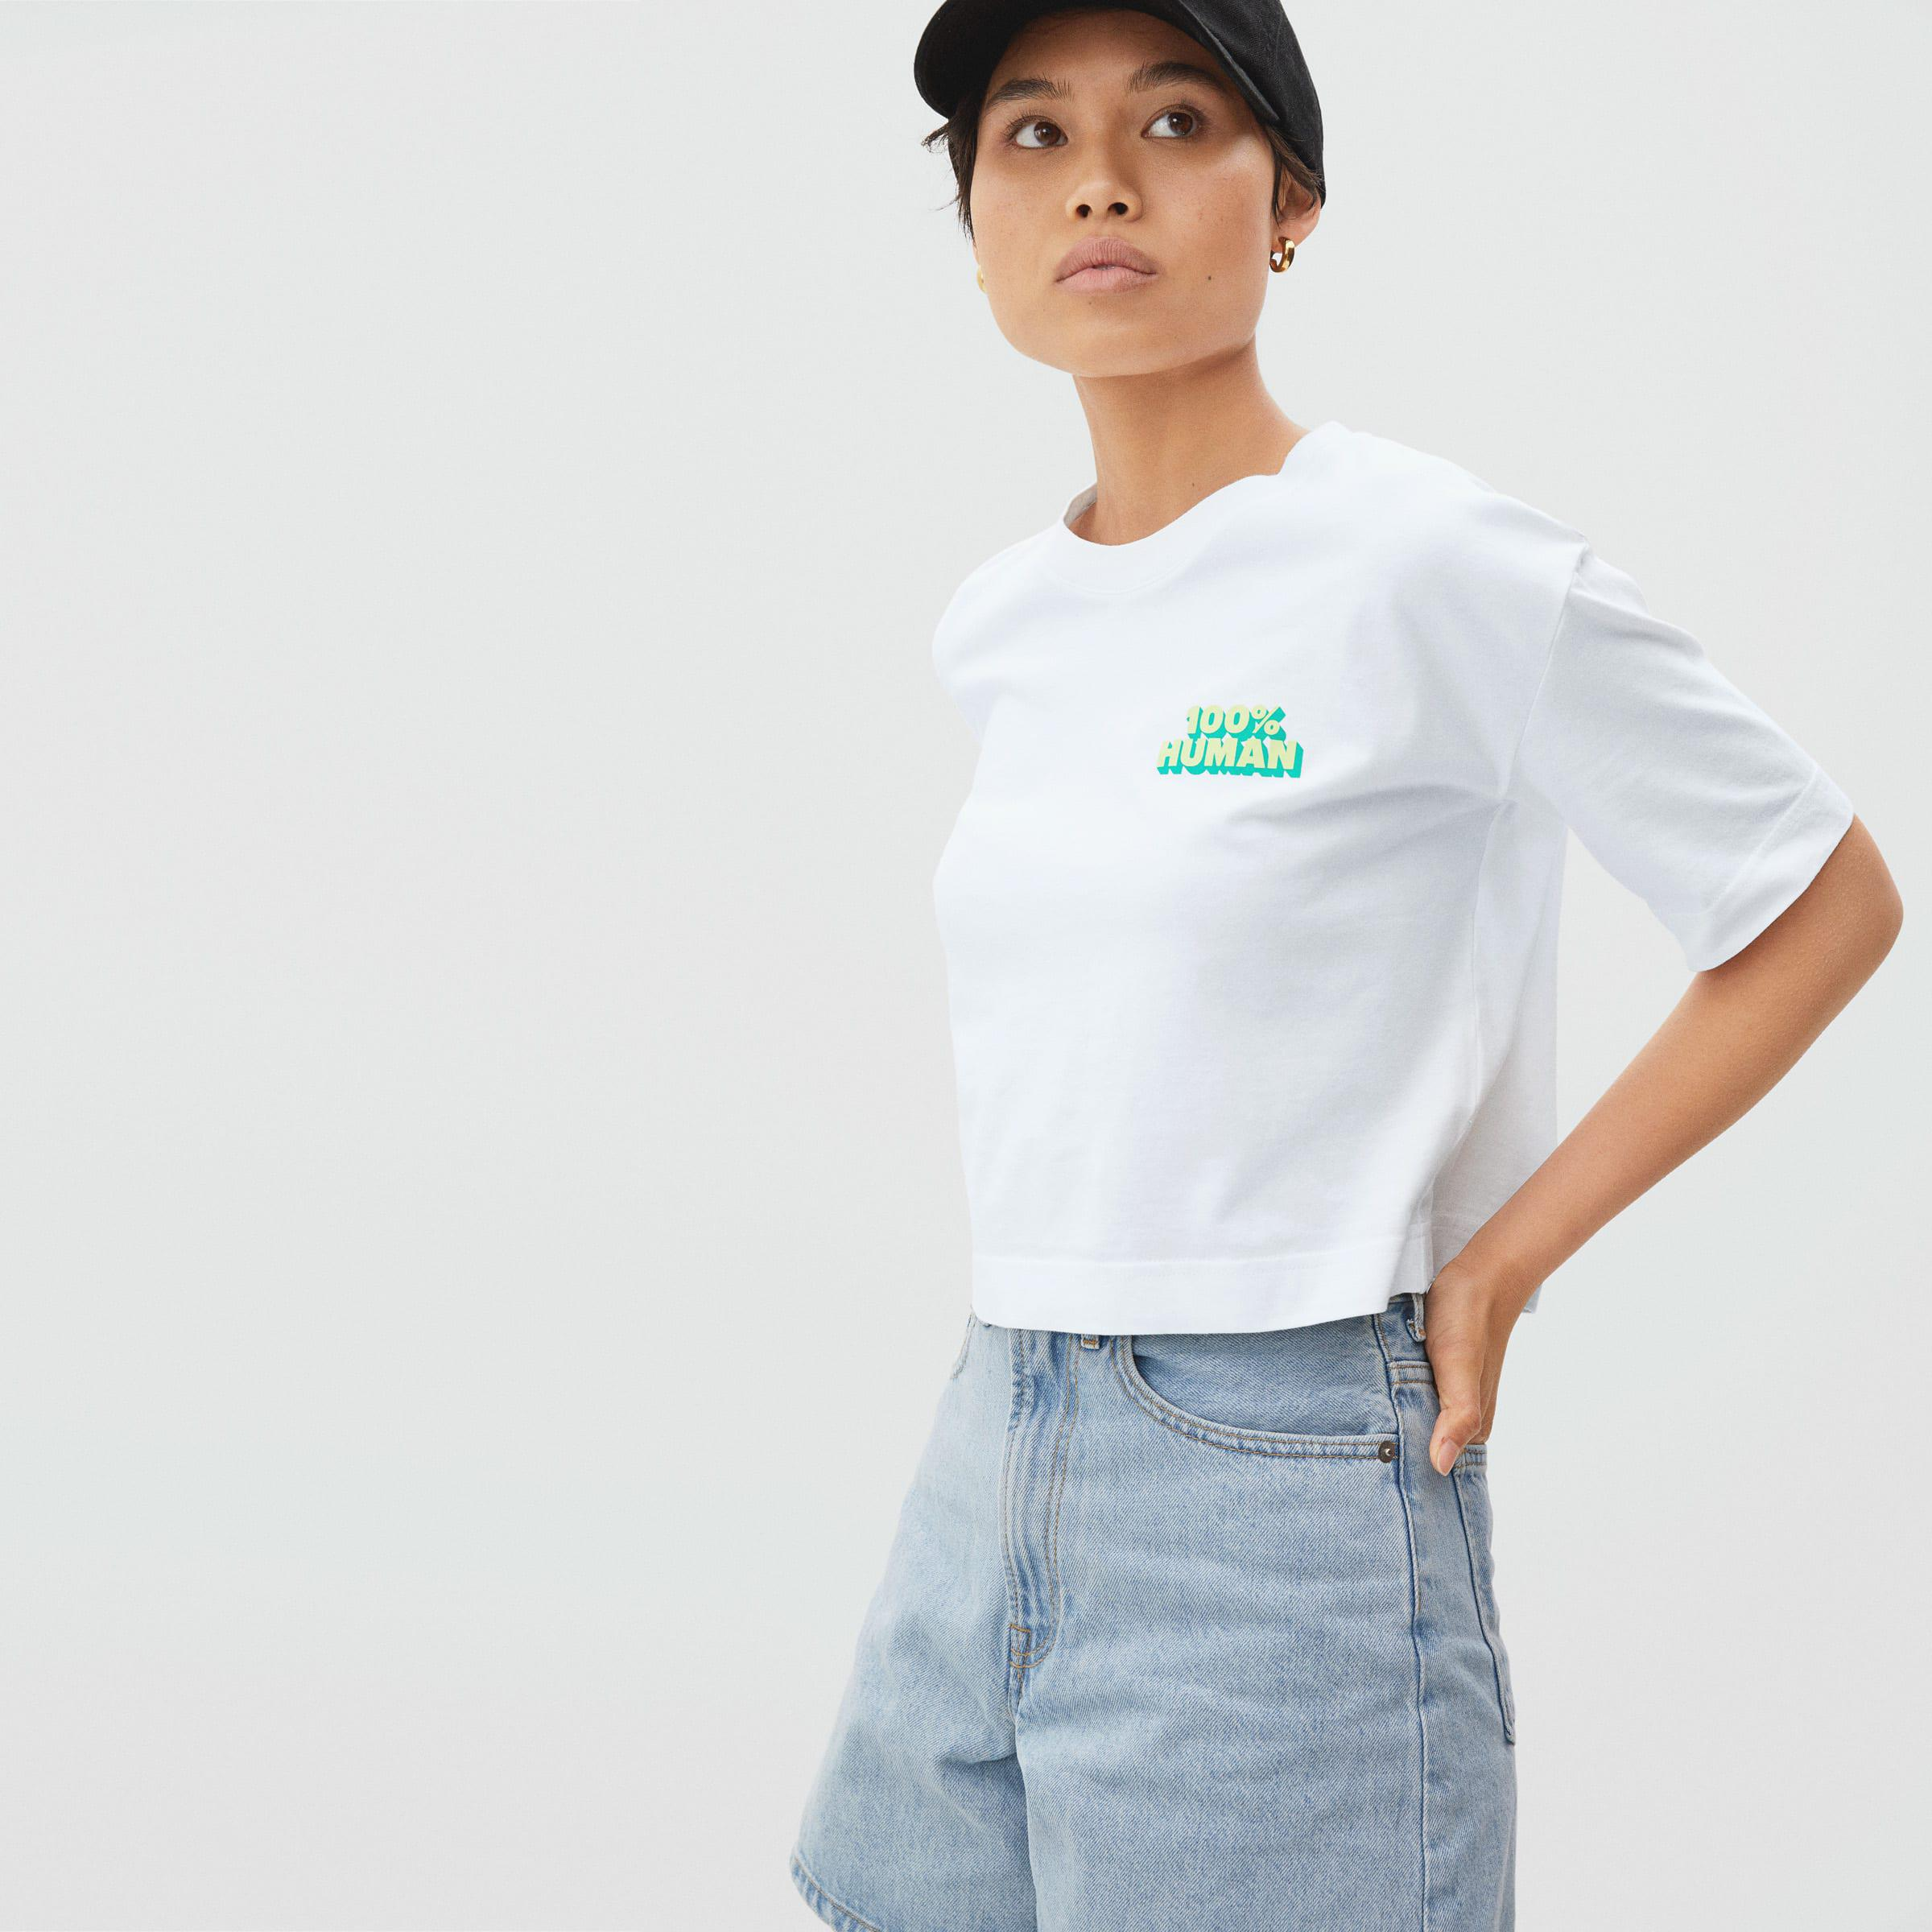 The 100% Human Cropped Tee